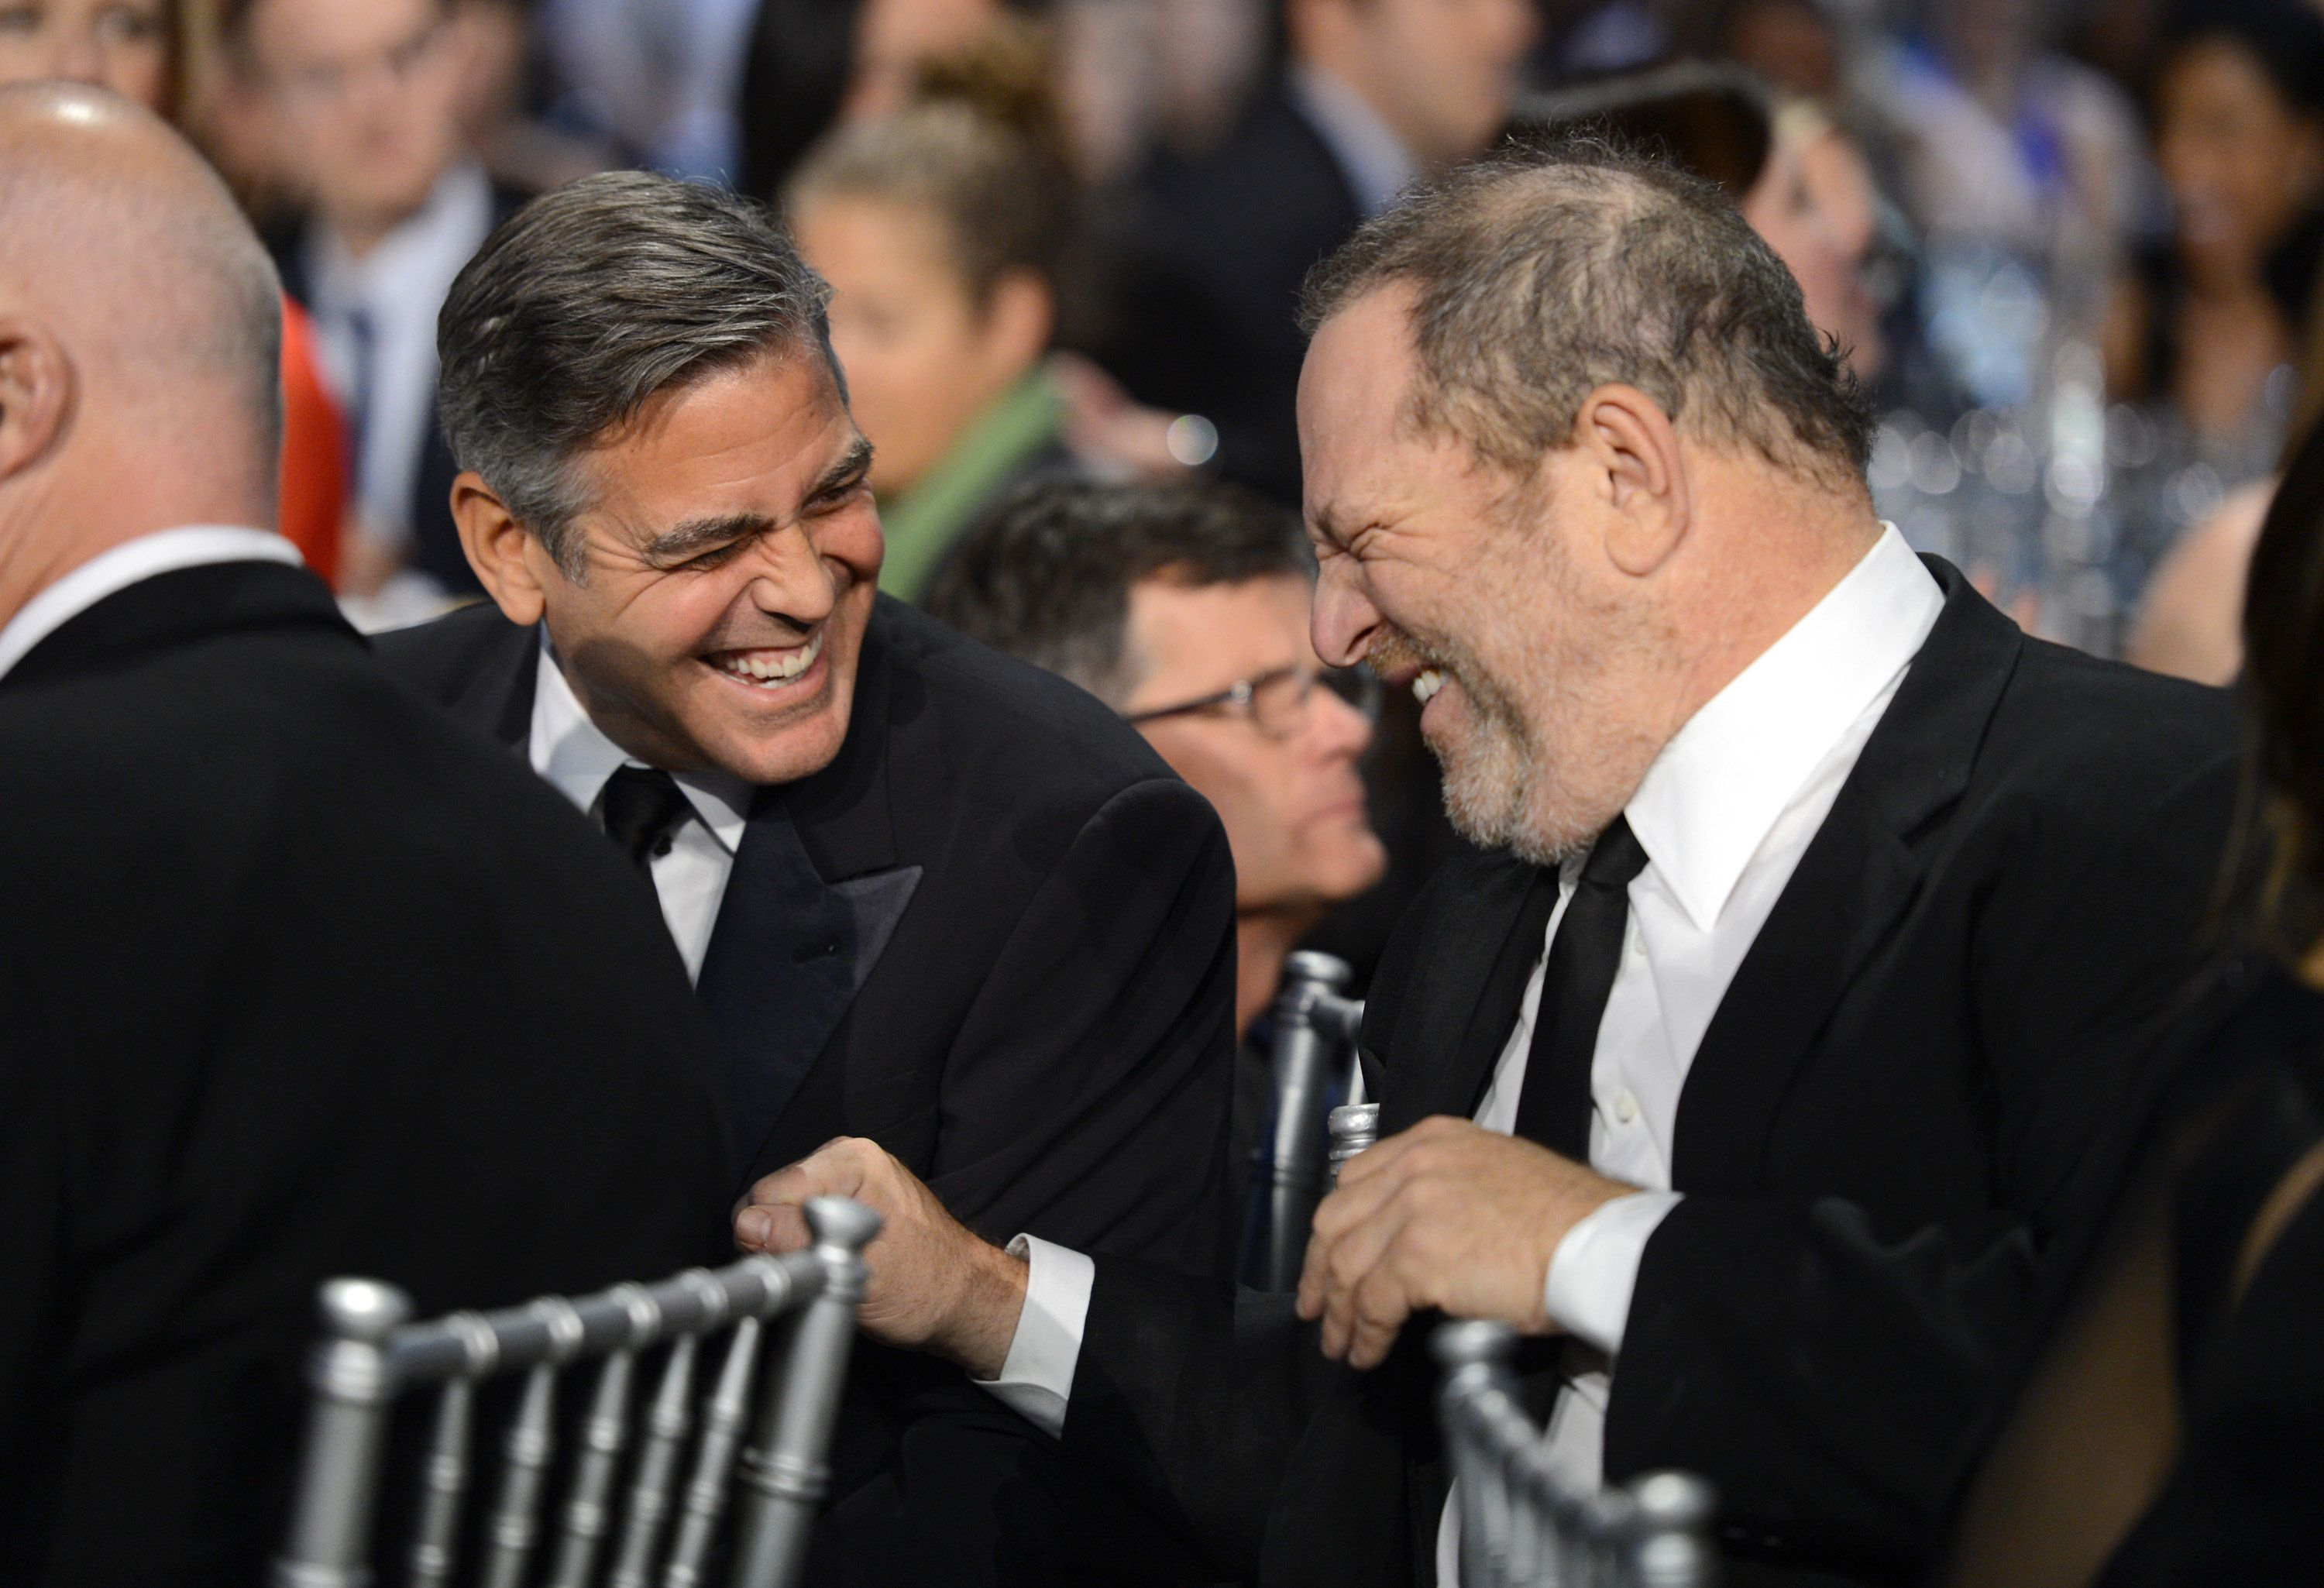 """George Clooney and Harvey Weinstein share a laugh in 2013. Clooney called the accusations against Weinstein """"disturbing"""" in p"""